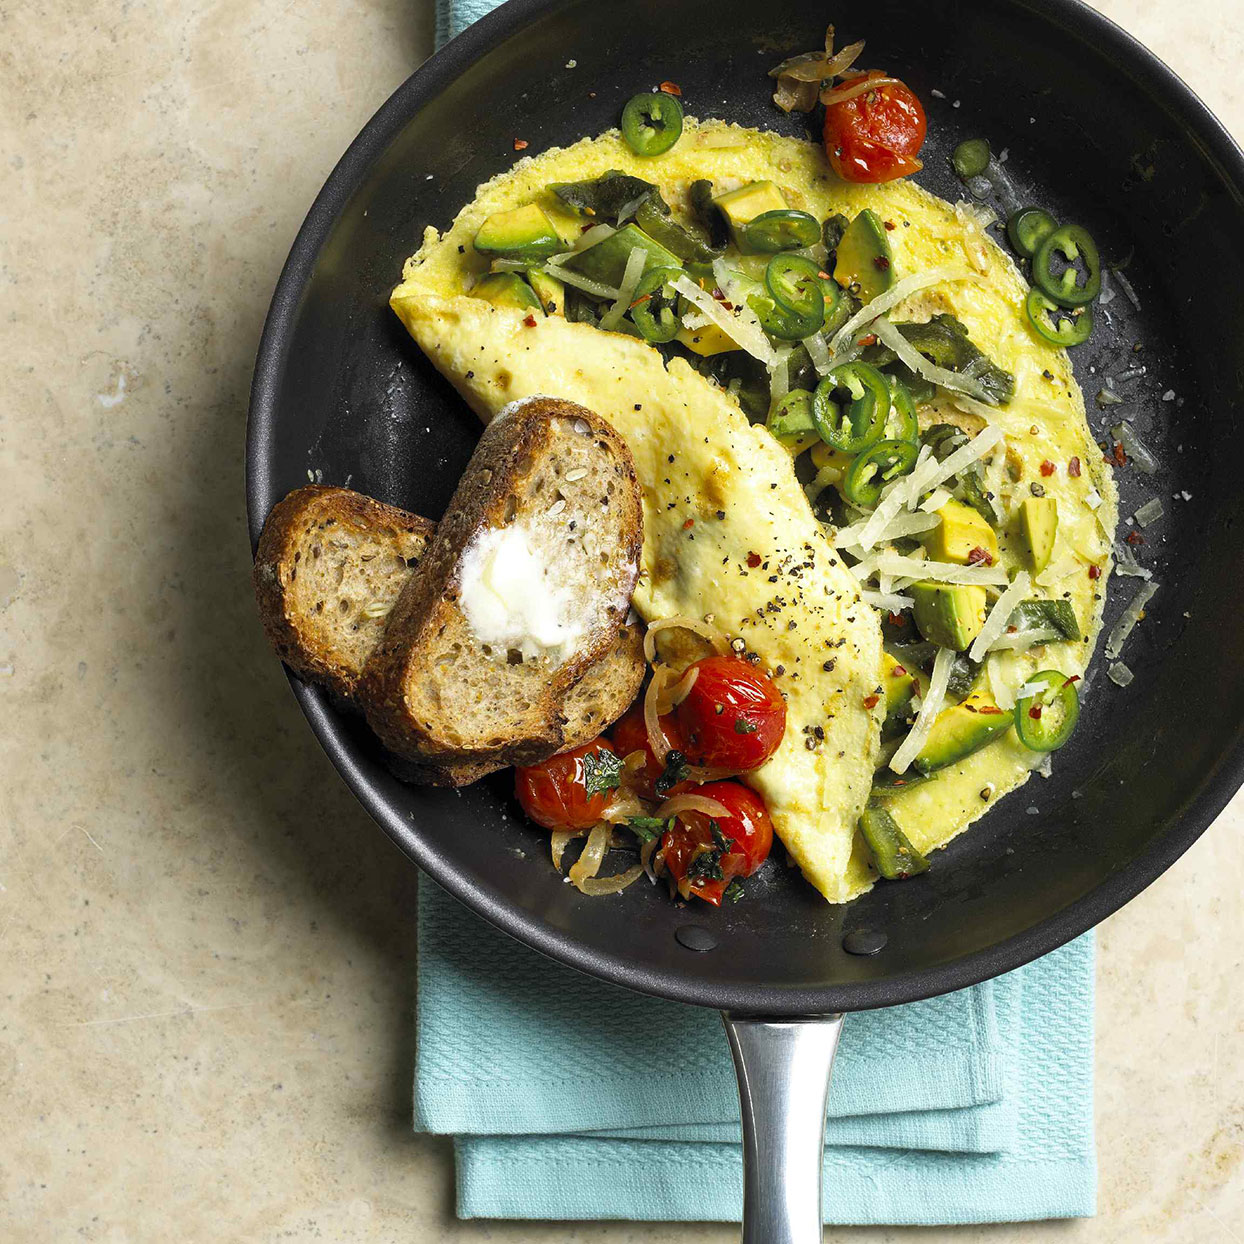 omelet-in-a-pan